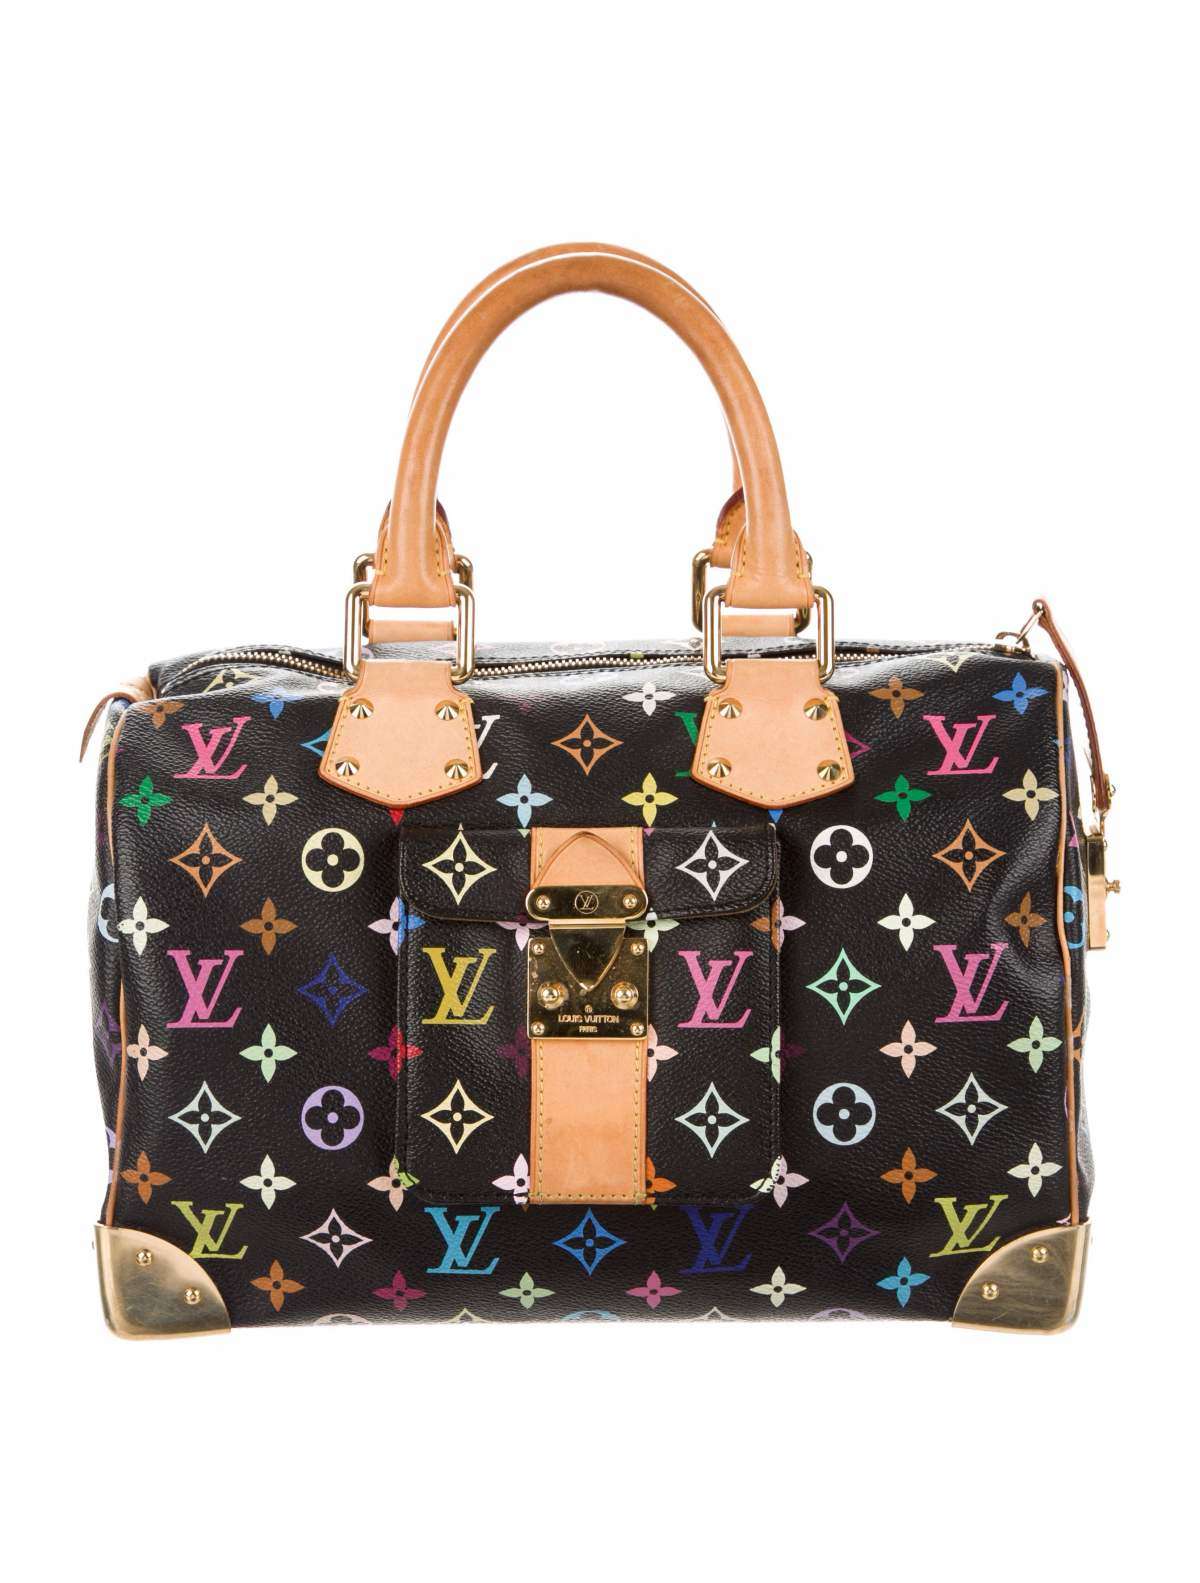 Multicolore Speedy 30 by Louis Vuitton, available on therealreal.com for $1195 Kendall Jenner Bags Exact Product